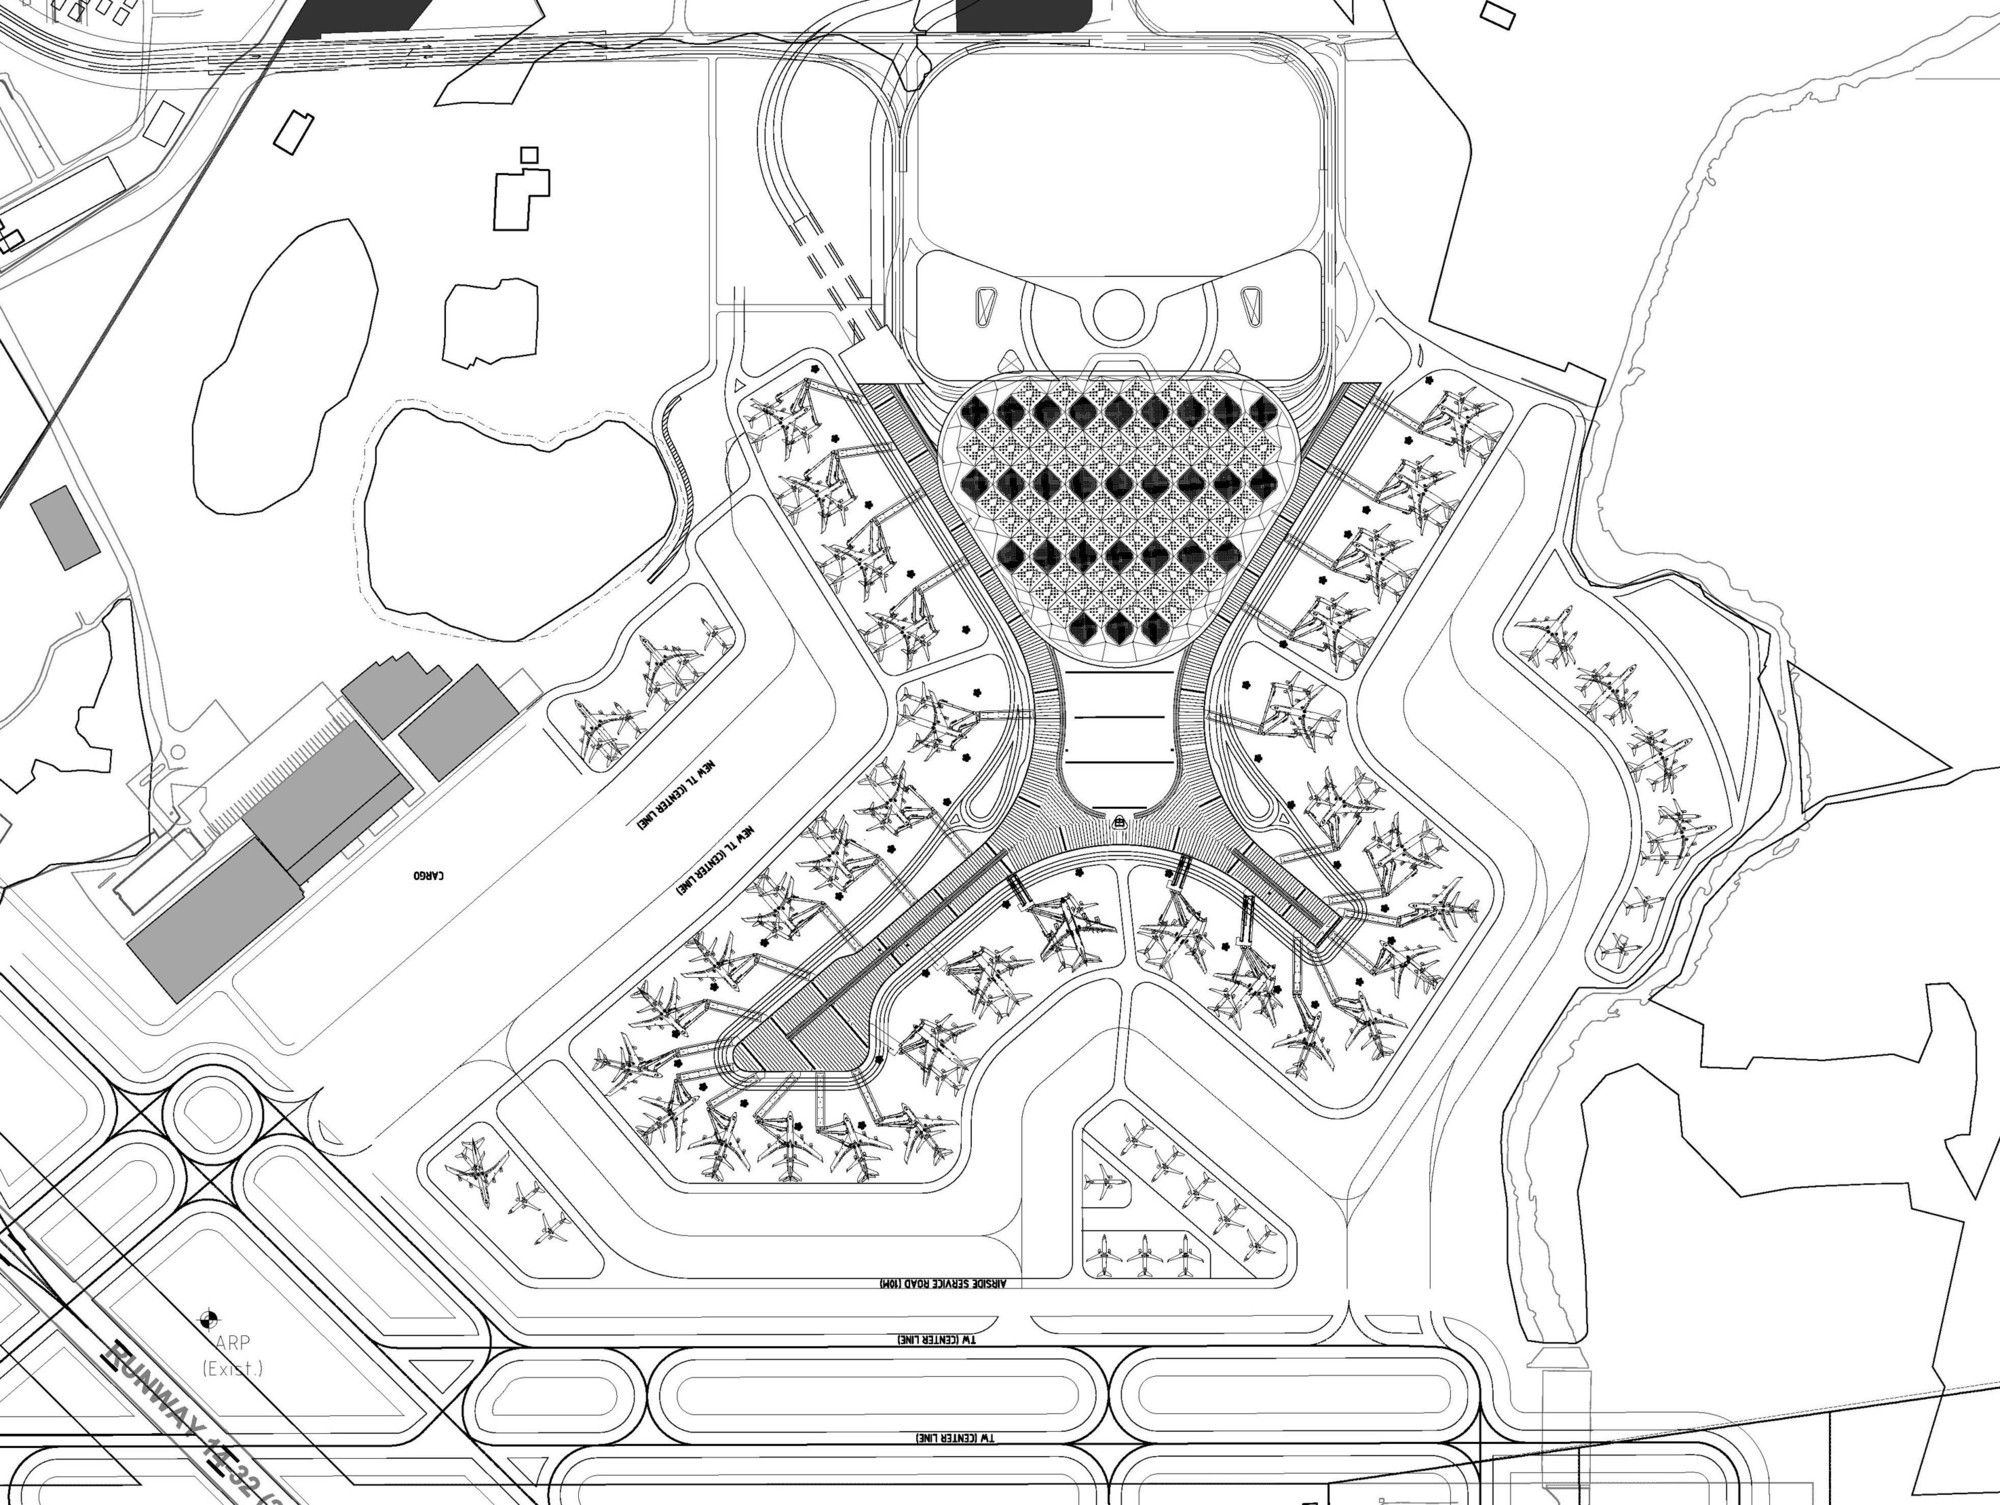 Gallery of chhatrapati shivaji international airport terminal 2 som 11 architecture Airport planning and design course